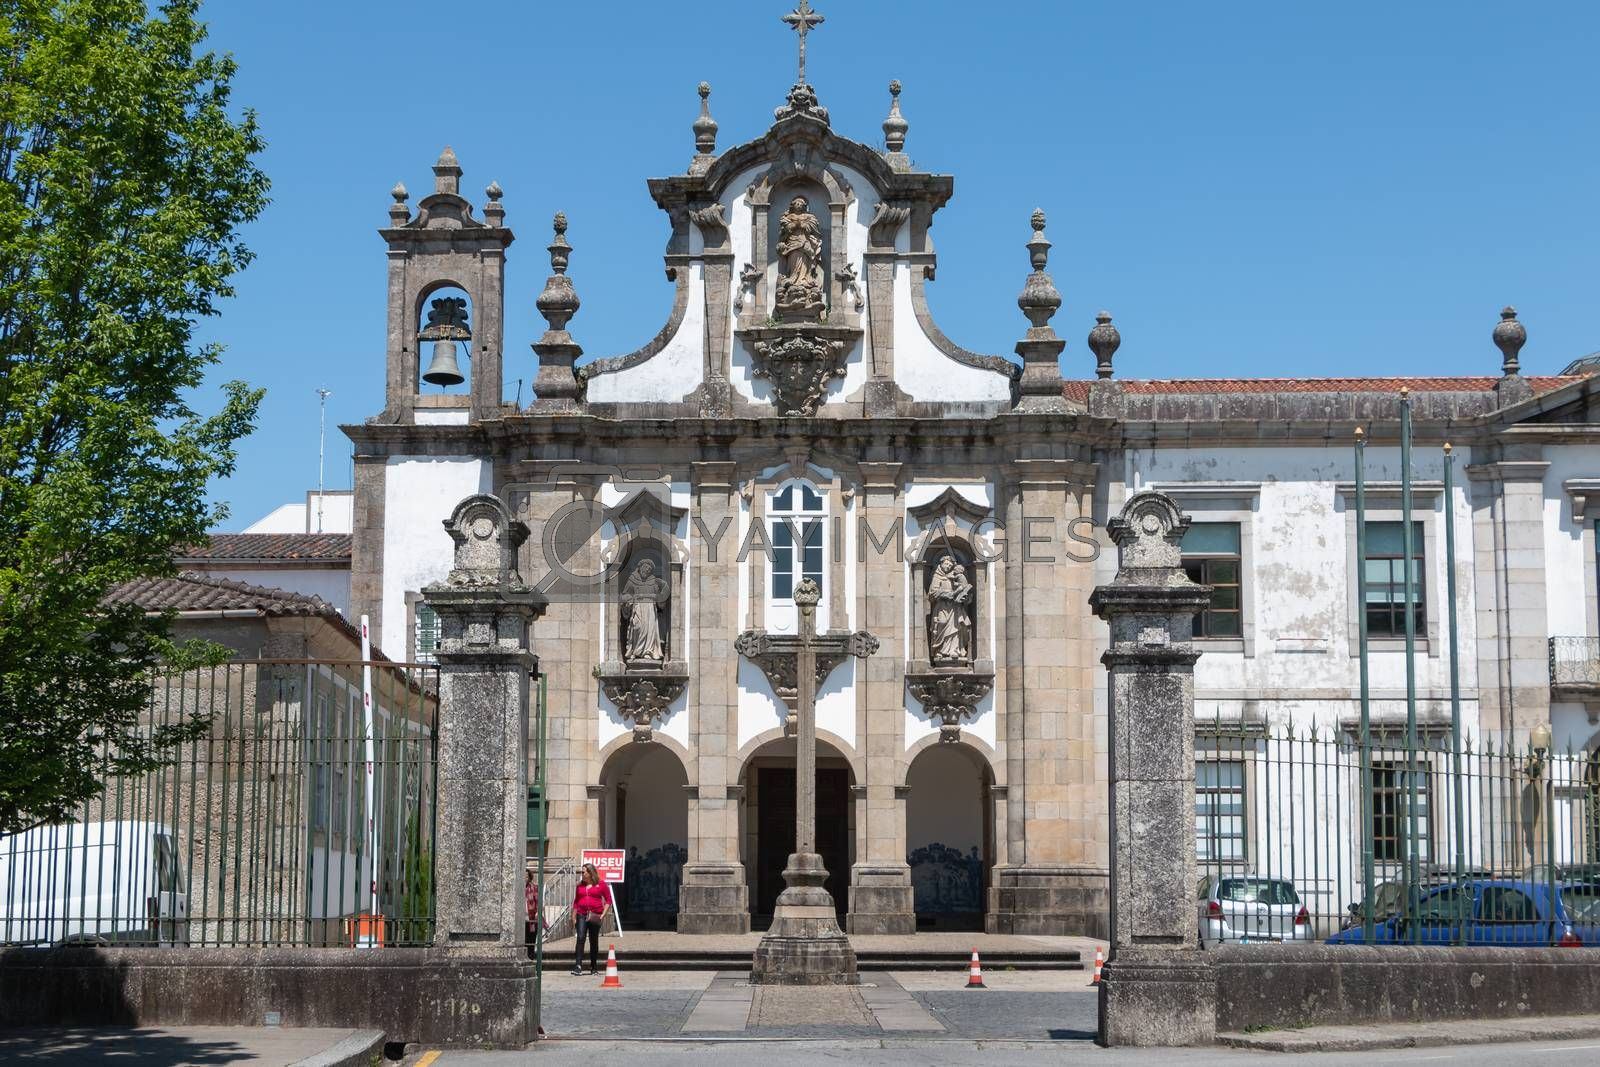 Guimaraes, Portugal - May 10, 2018: Convent of Santo Antonio dos Capuchos in the historic city center as tourists visit on a spring day